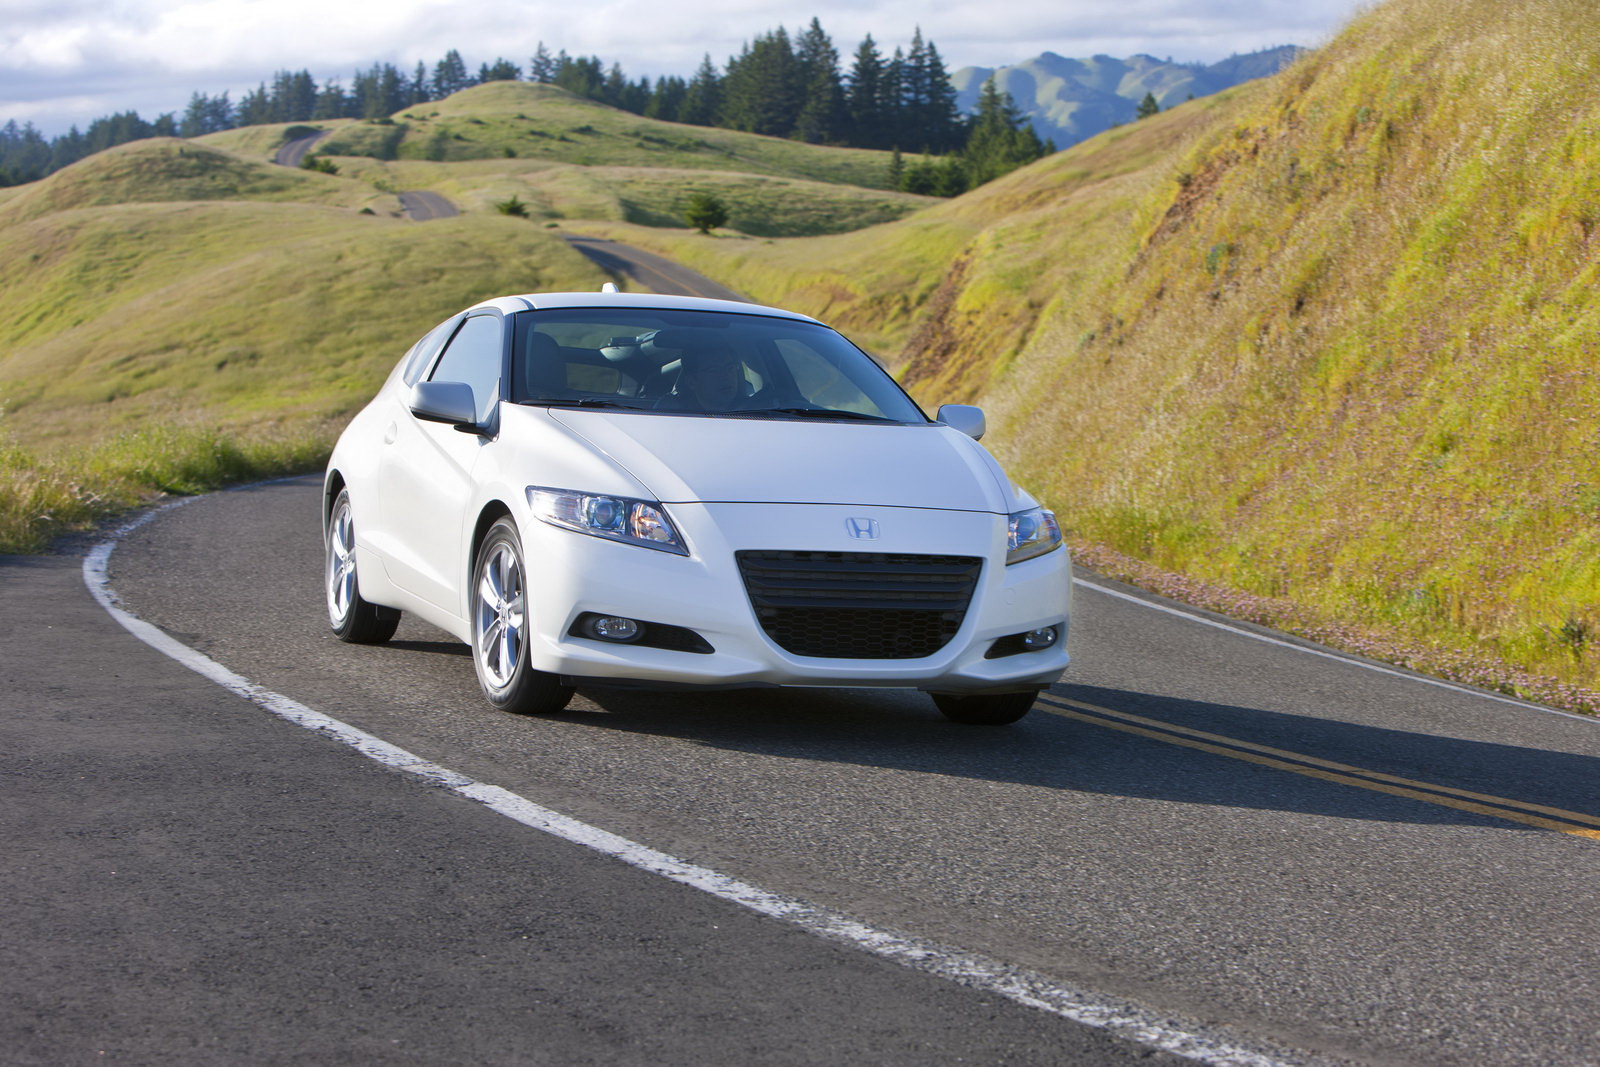 Poll would you rather have a honda cr z or a new scion tc in your garage